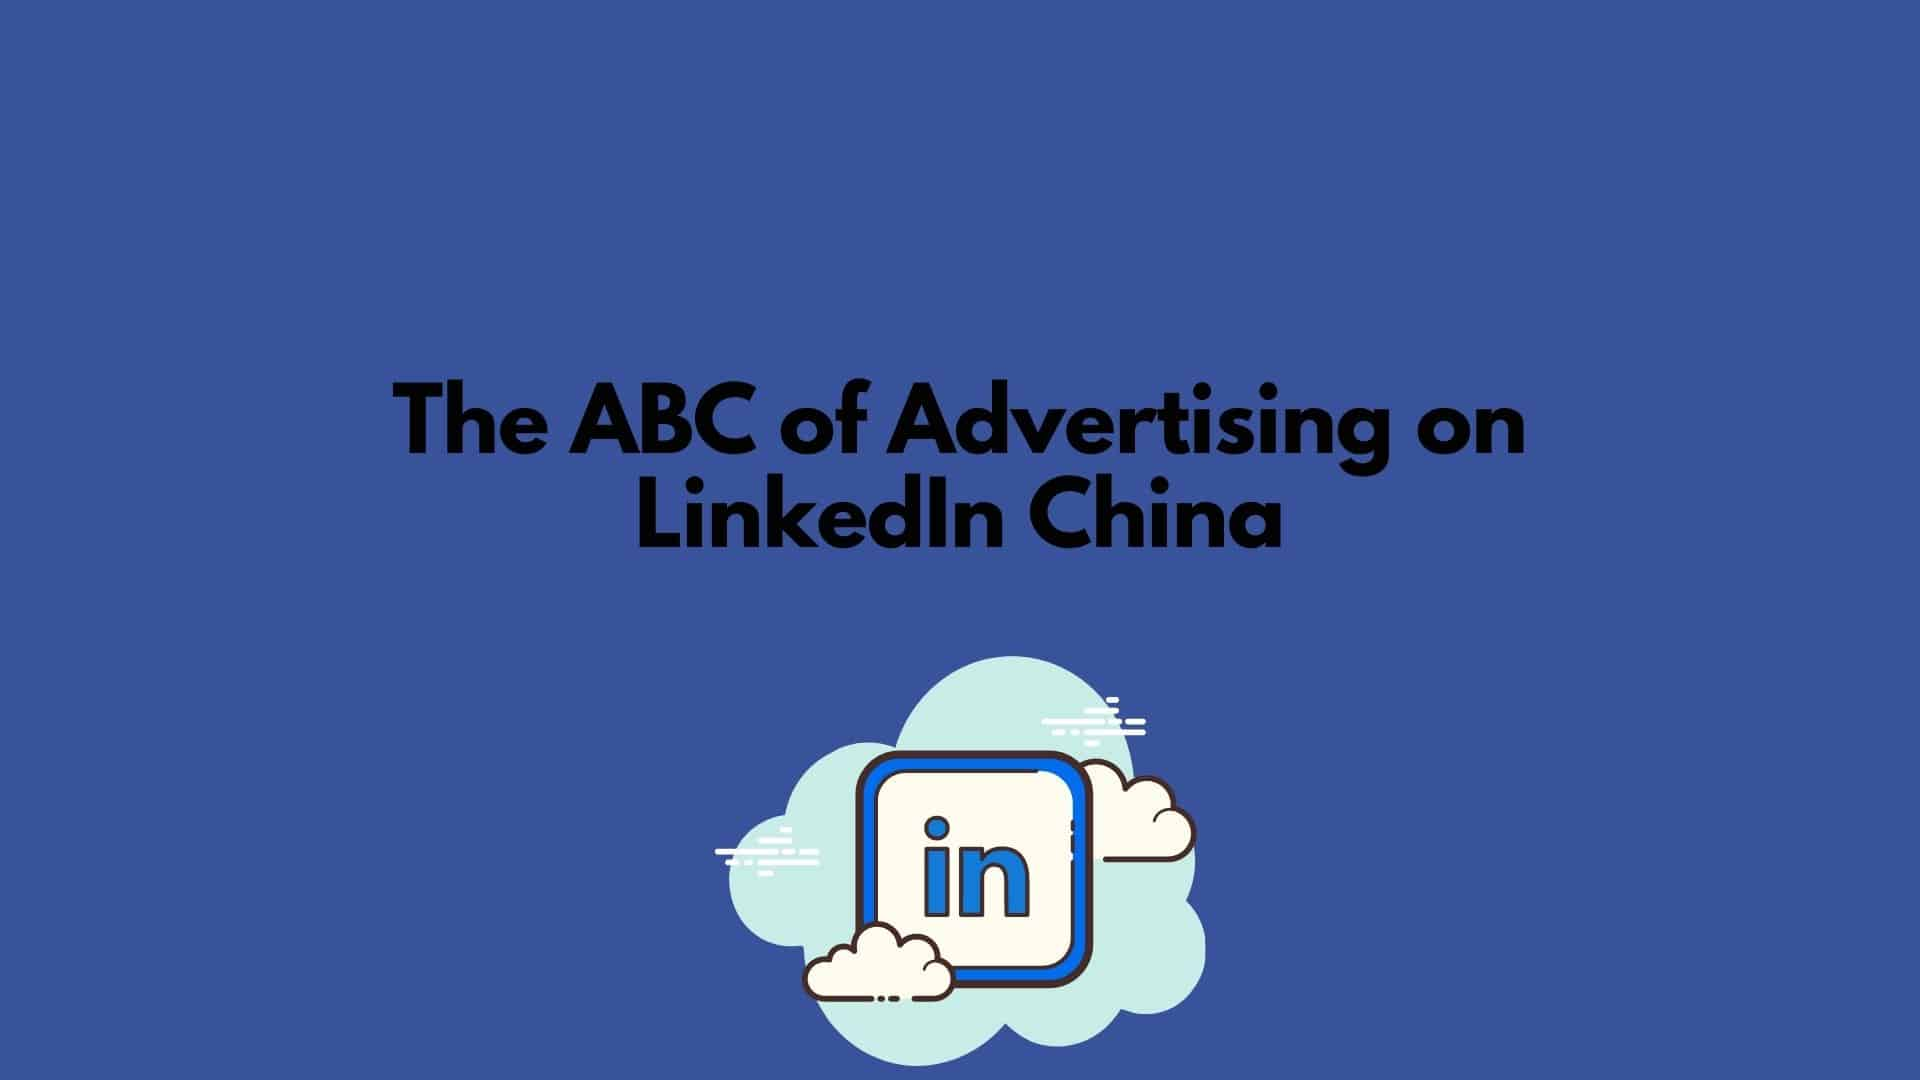 The ABC of Advertising on LinkedIn China